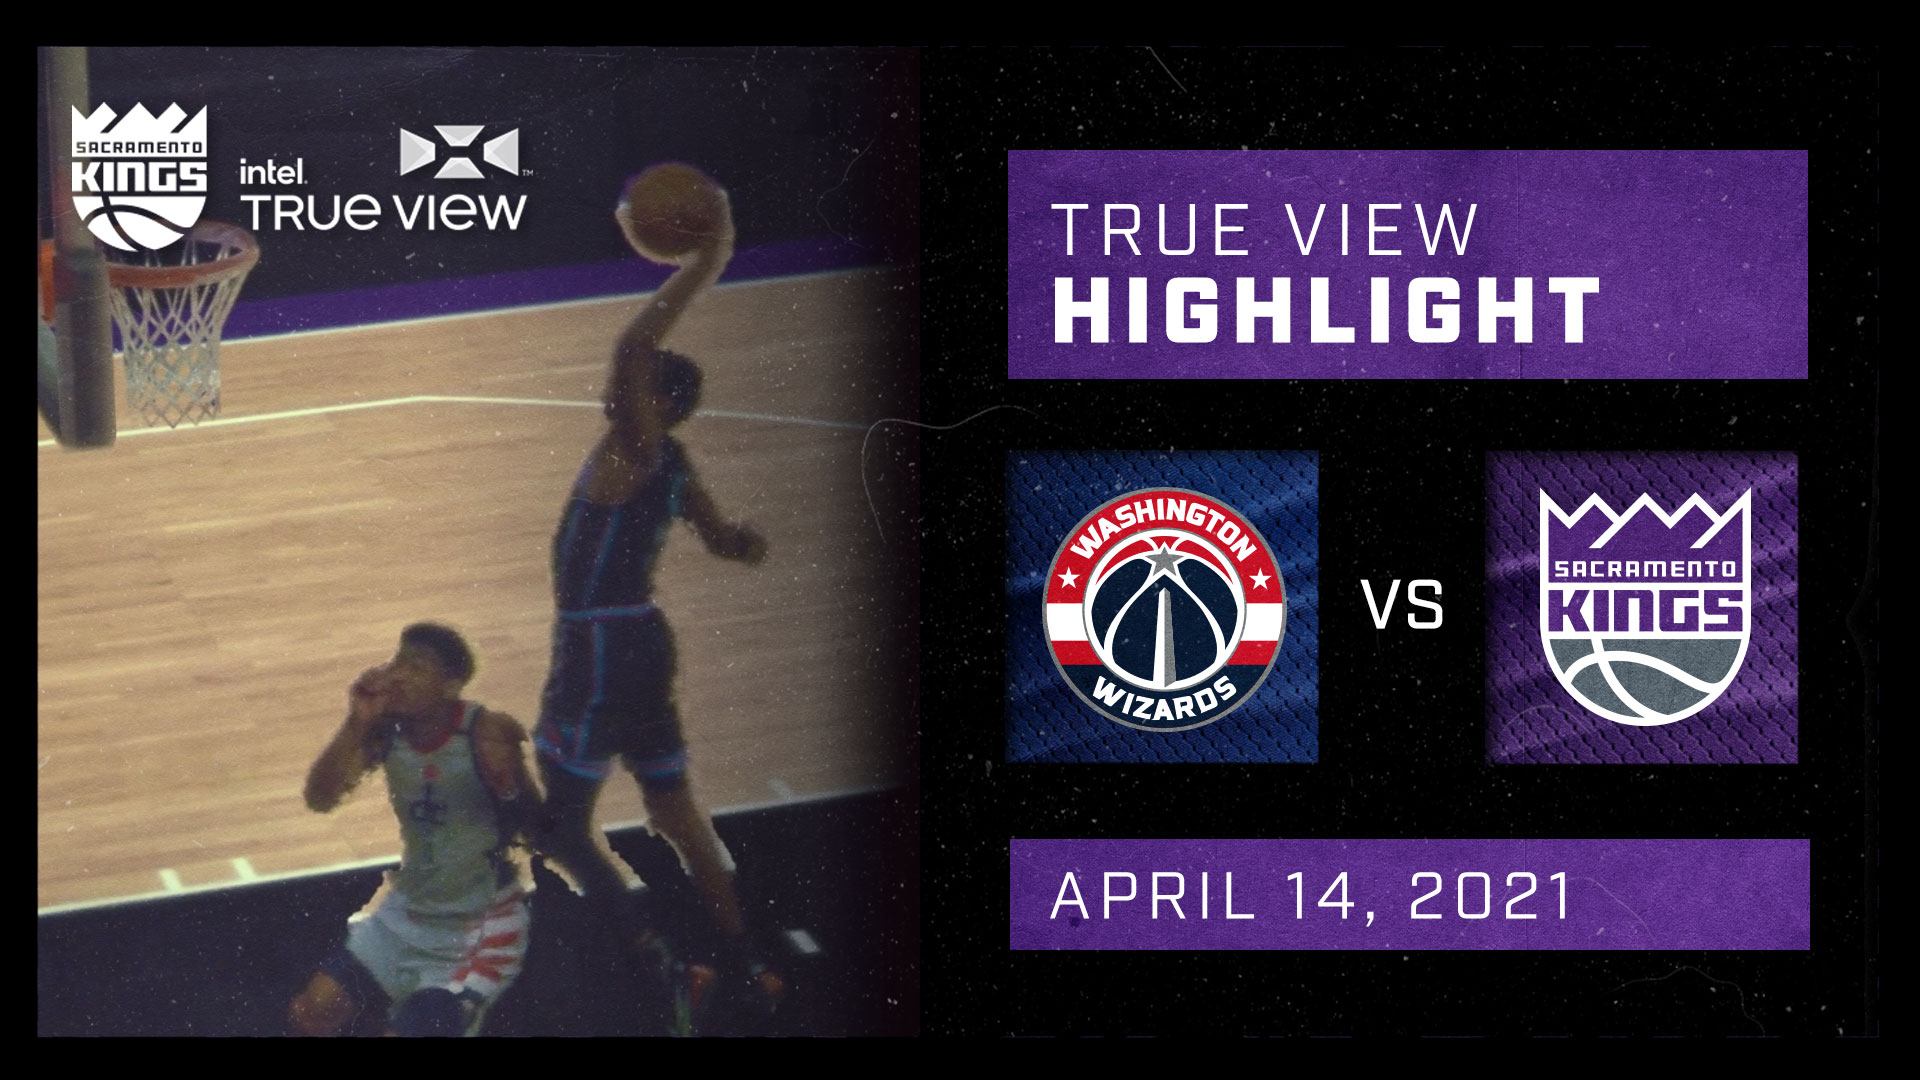 Intel True View Highlight - Fox Steal and Dunk vs Wizards 4.14.21